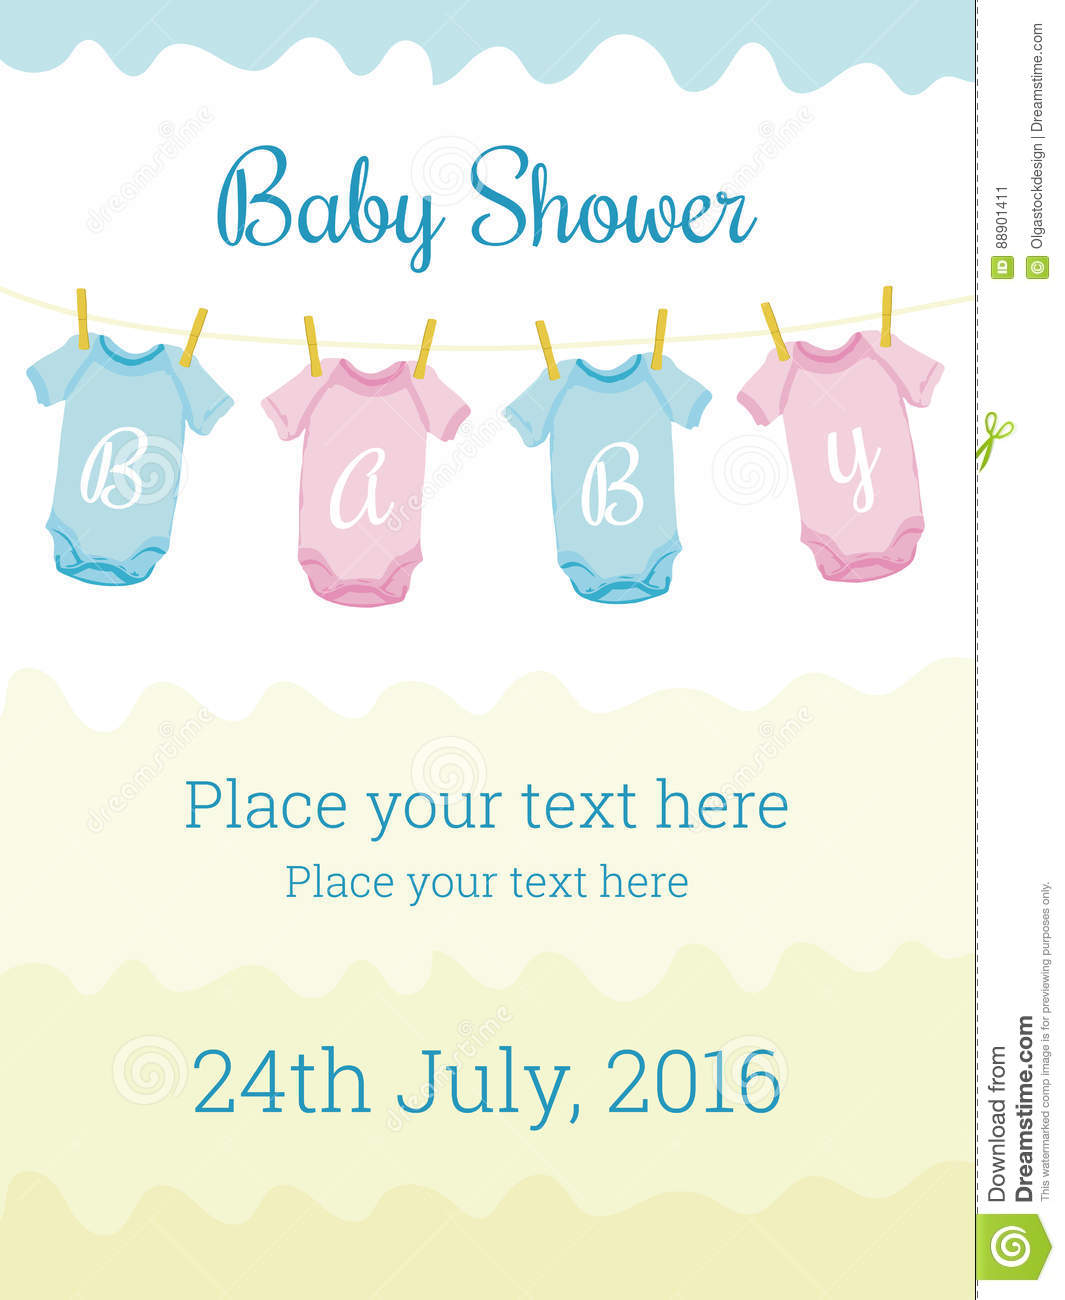 Baby Shower Invitation Card Template Stock Vector Illustration Of